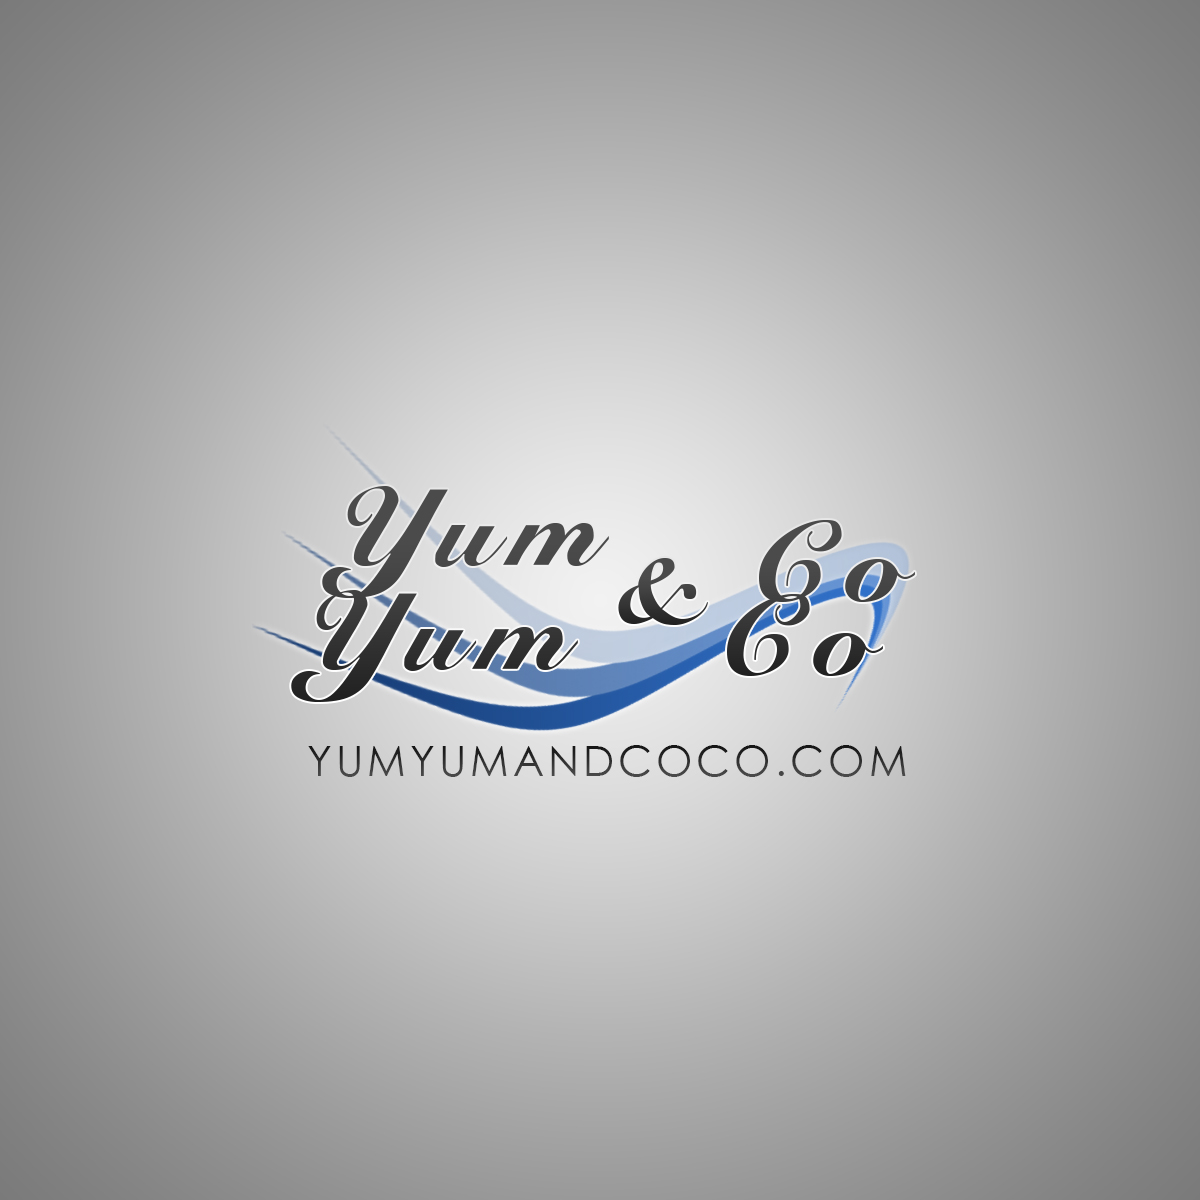 Logo Design by Viral Ramani - Entry No. 116 in the Logo Design Contest Logo Design for YumYum & CoCo.